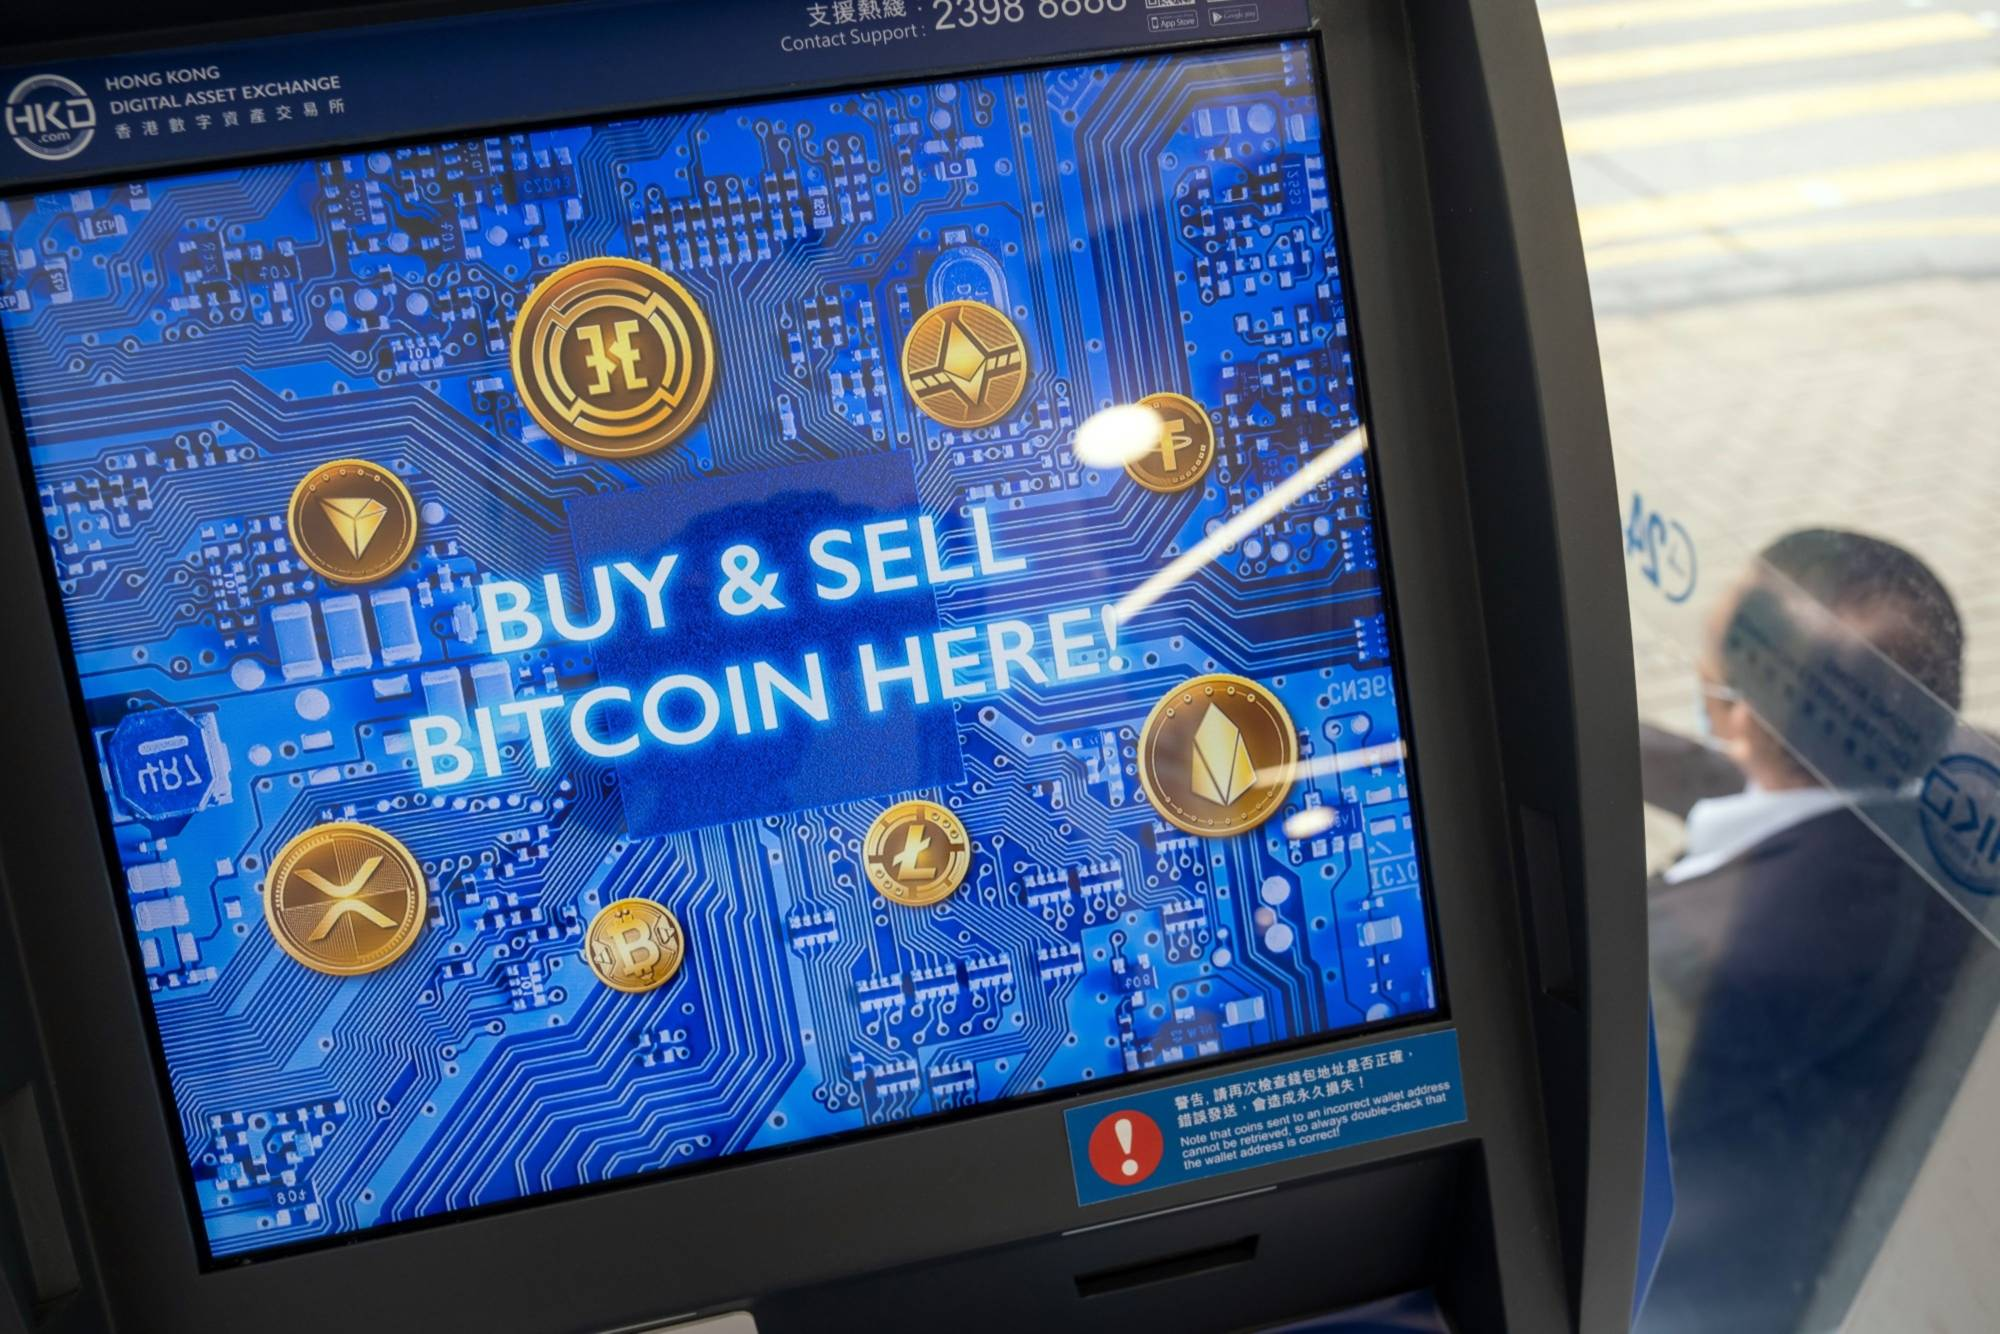 A cryptocurrency ATM at the Hong Kong Digital Asset Exchange   BLOOMBERG